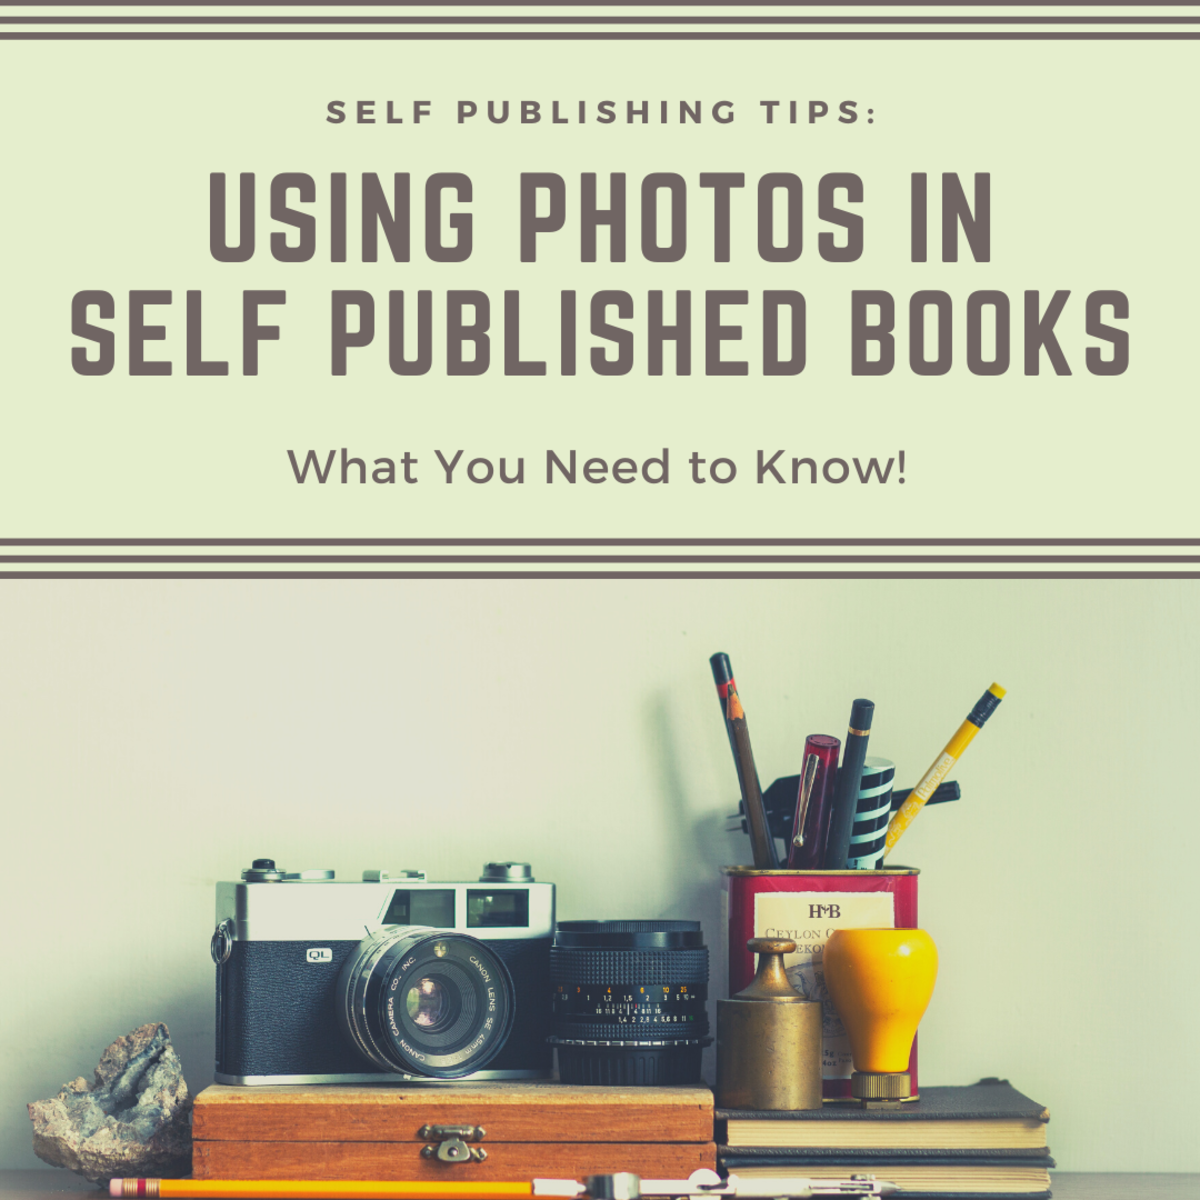 Understand the legal and technical issues for using photos in self published books